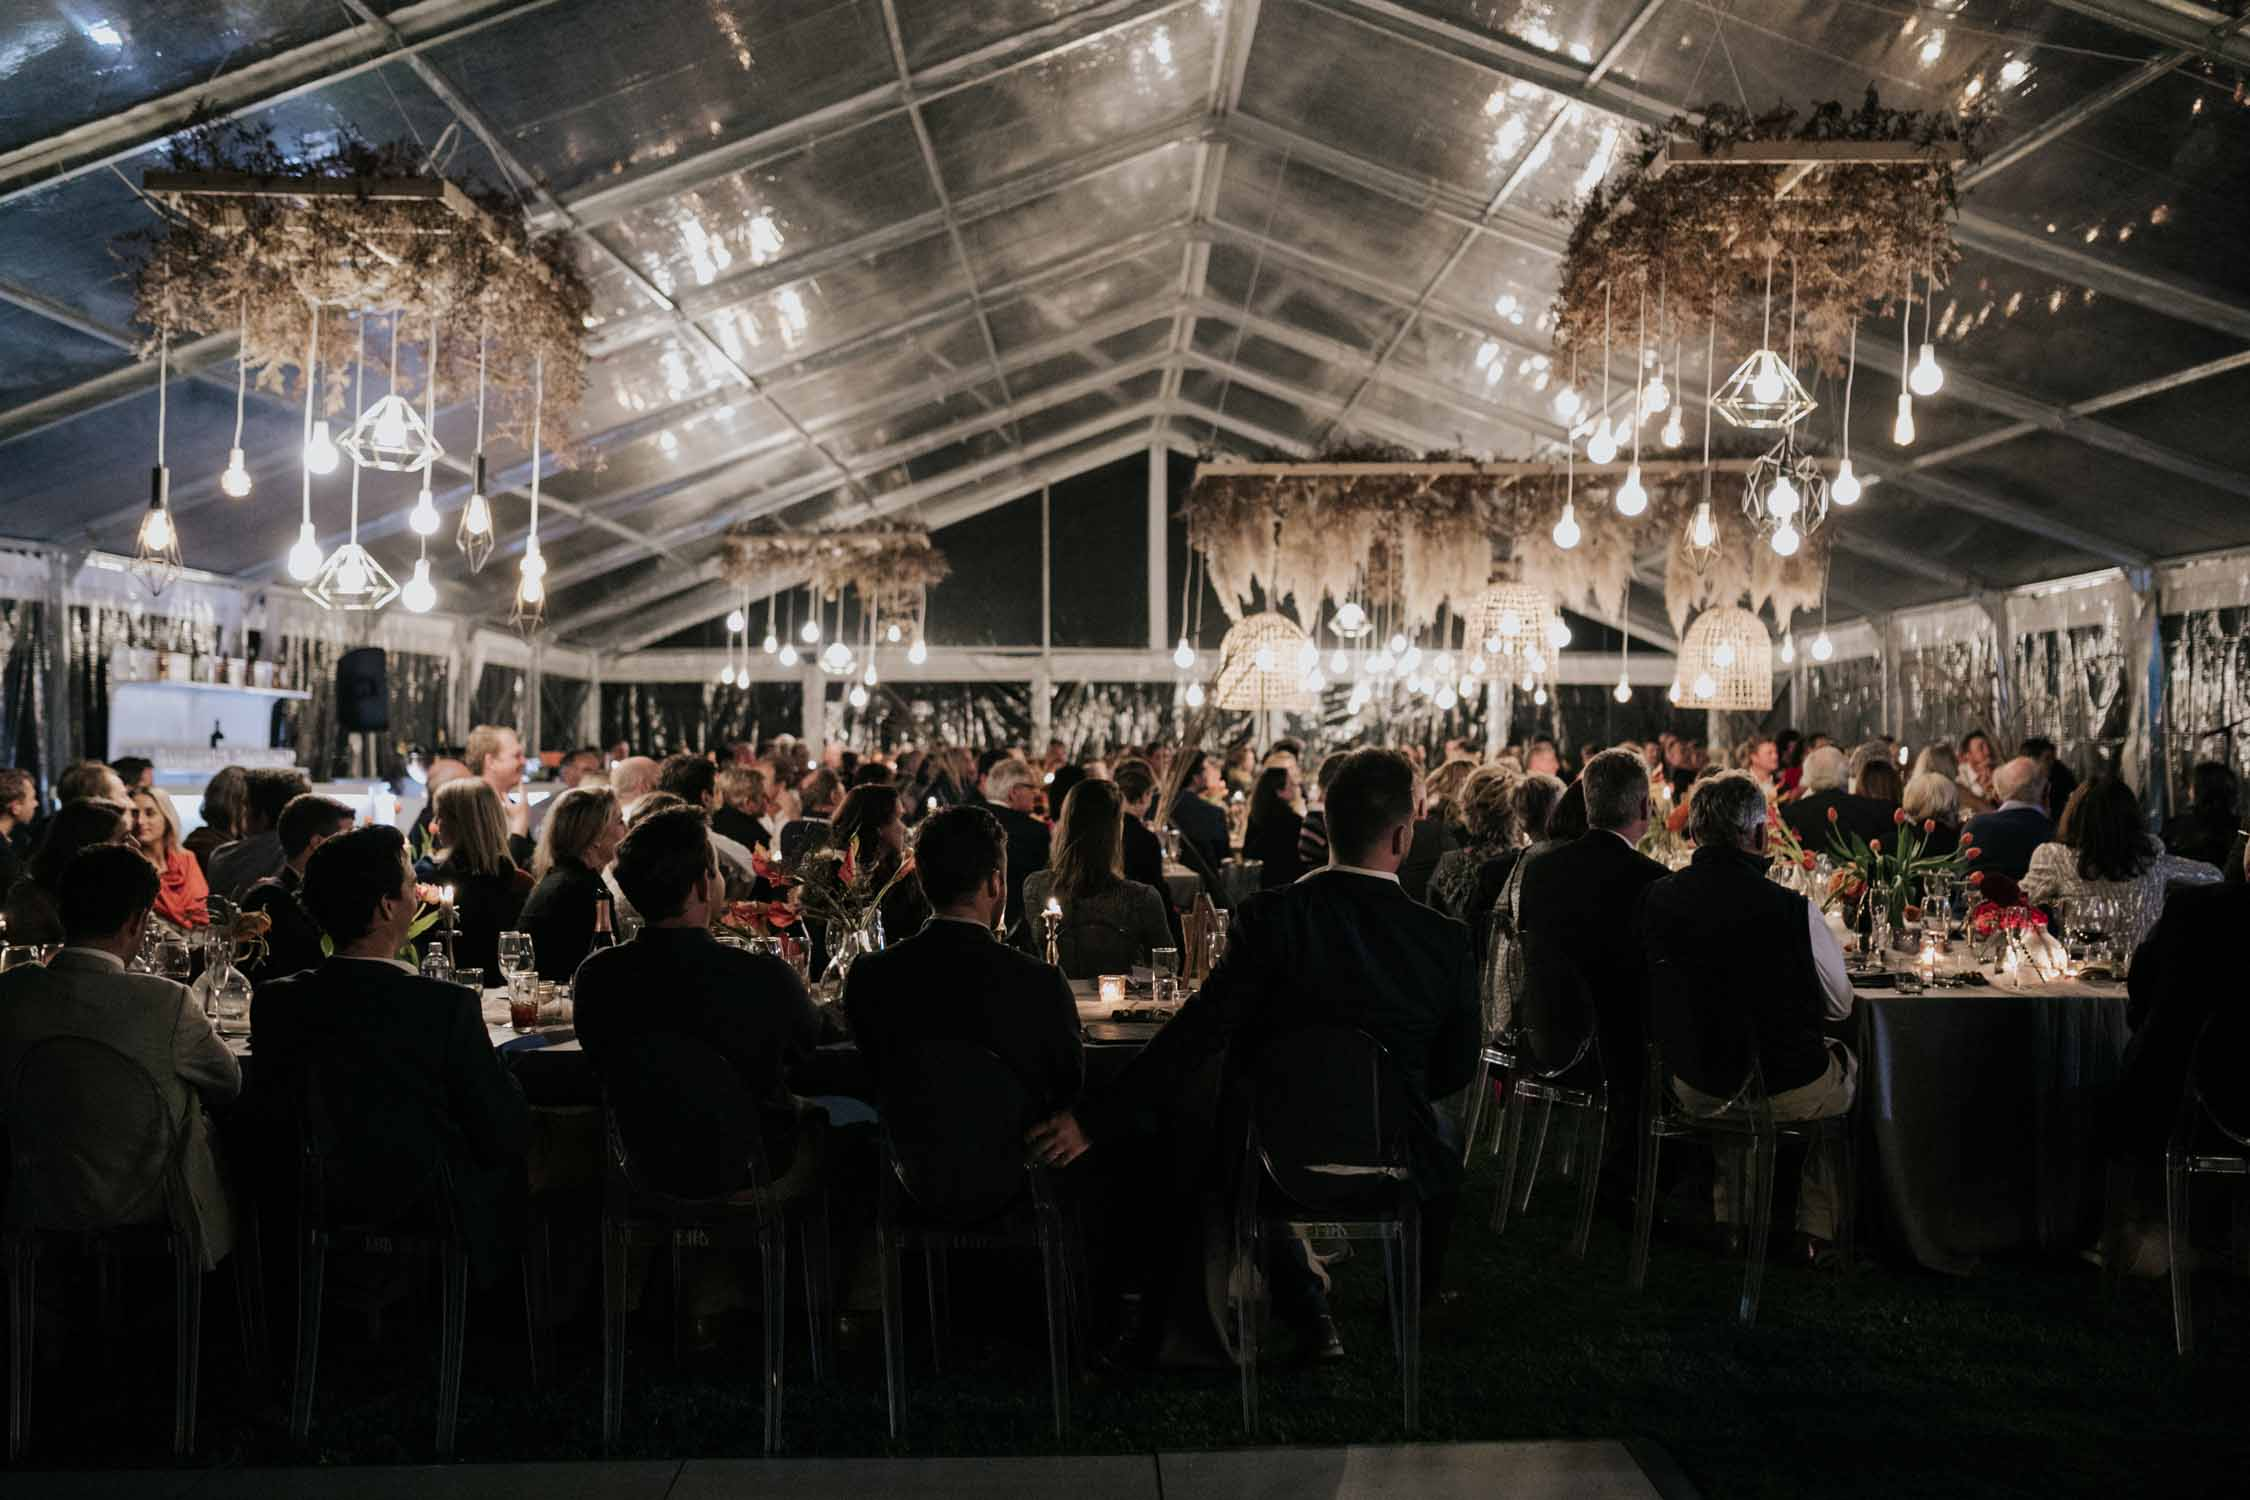 Glass wedding tent in the Natal Midlands at night time